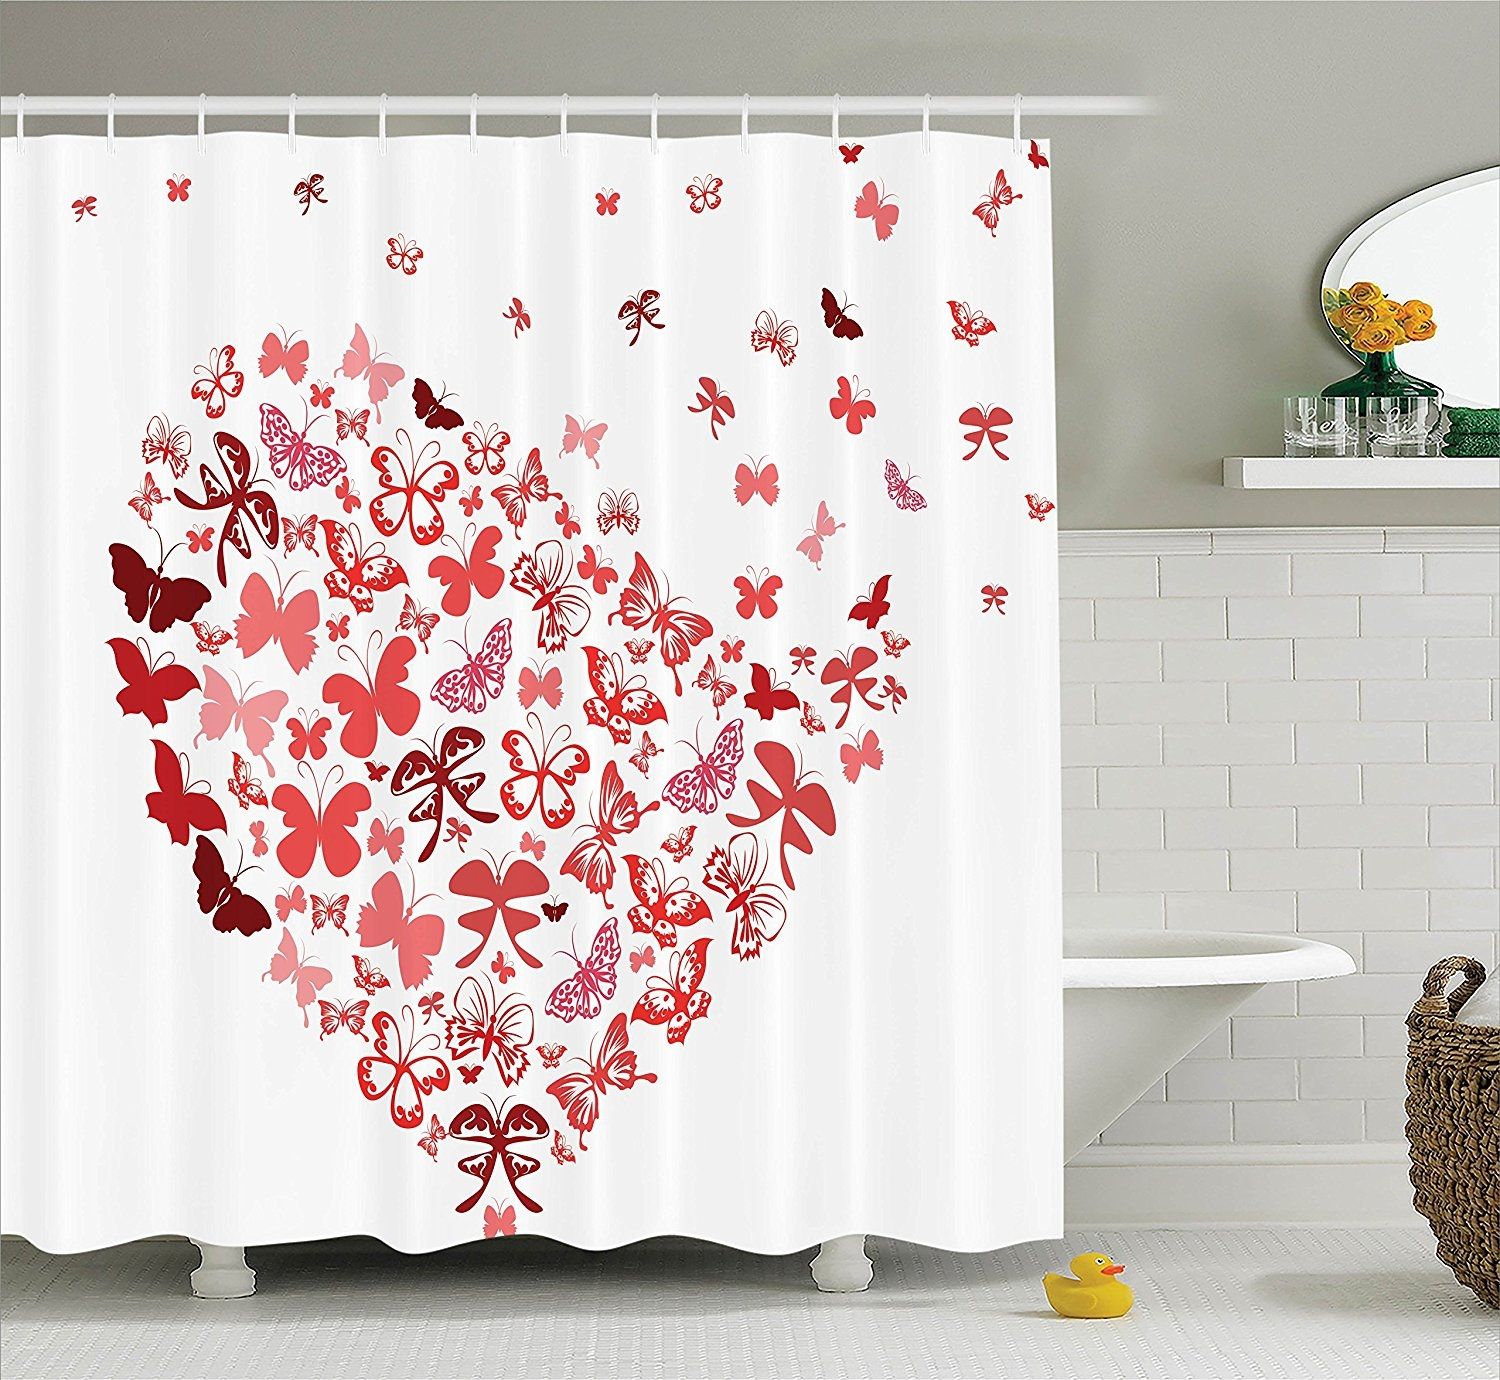 Pink Heart Shower Curtain Hooks • Shower Curtains Ideas